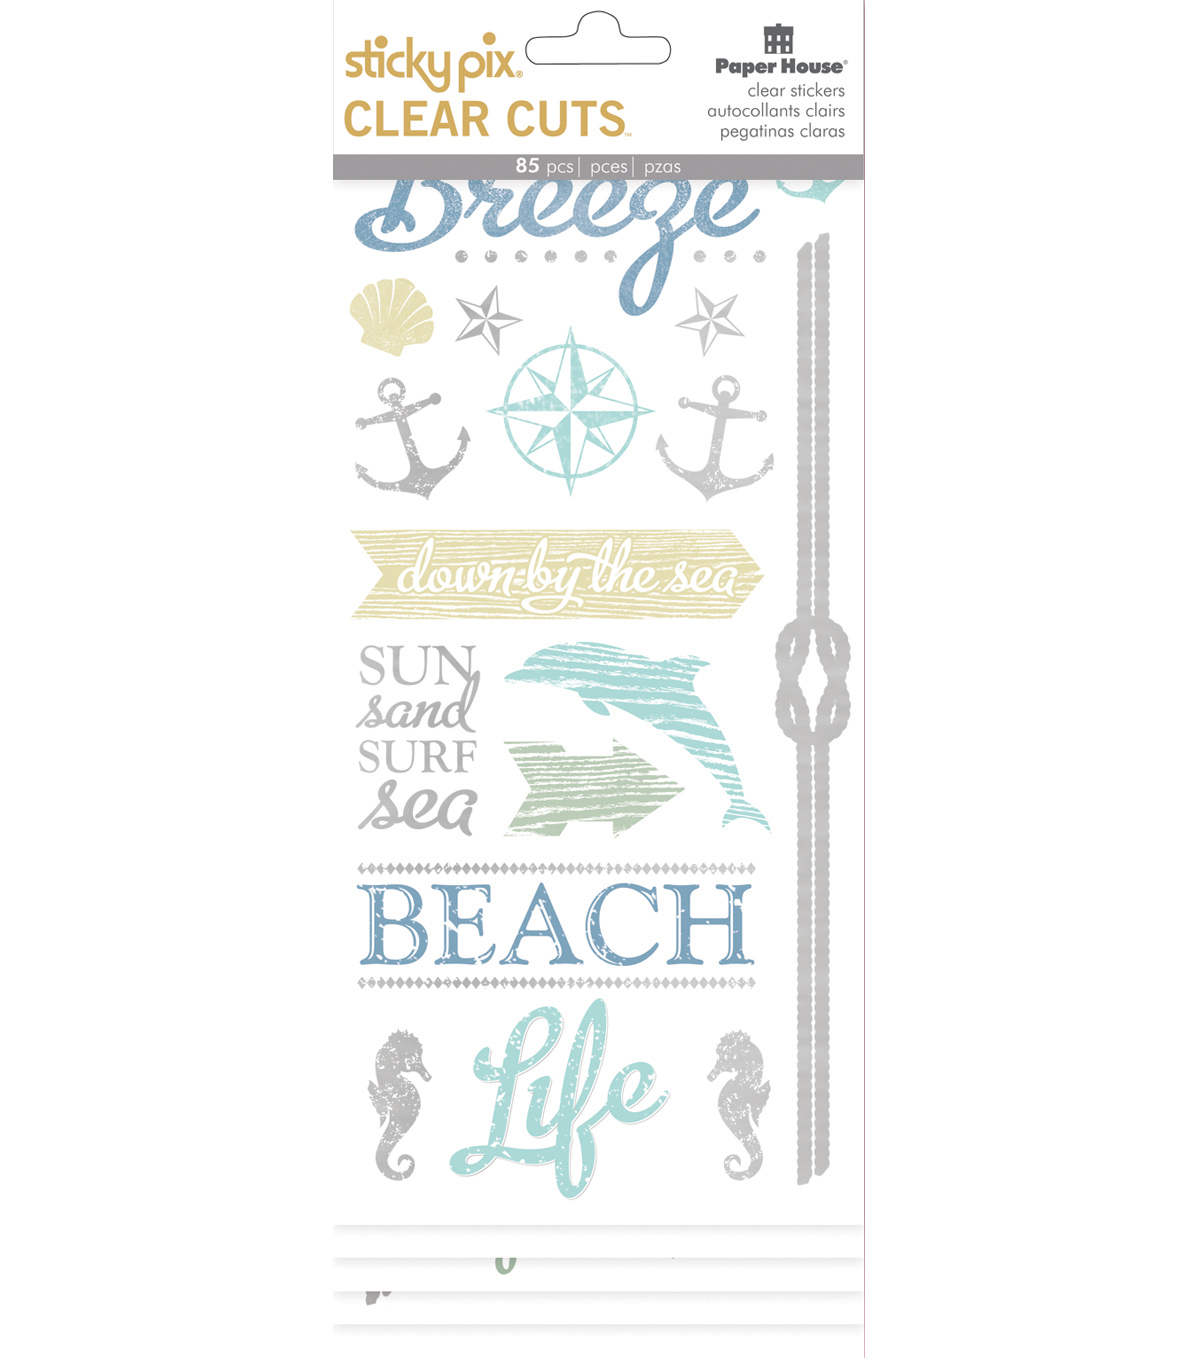 Paper House Sticky Pix Clear Cuts Pack of 85 Stickers-Beach